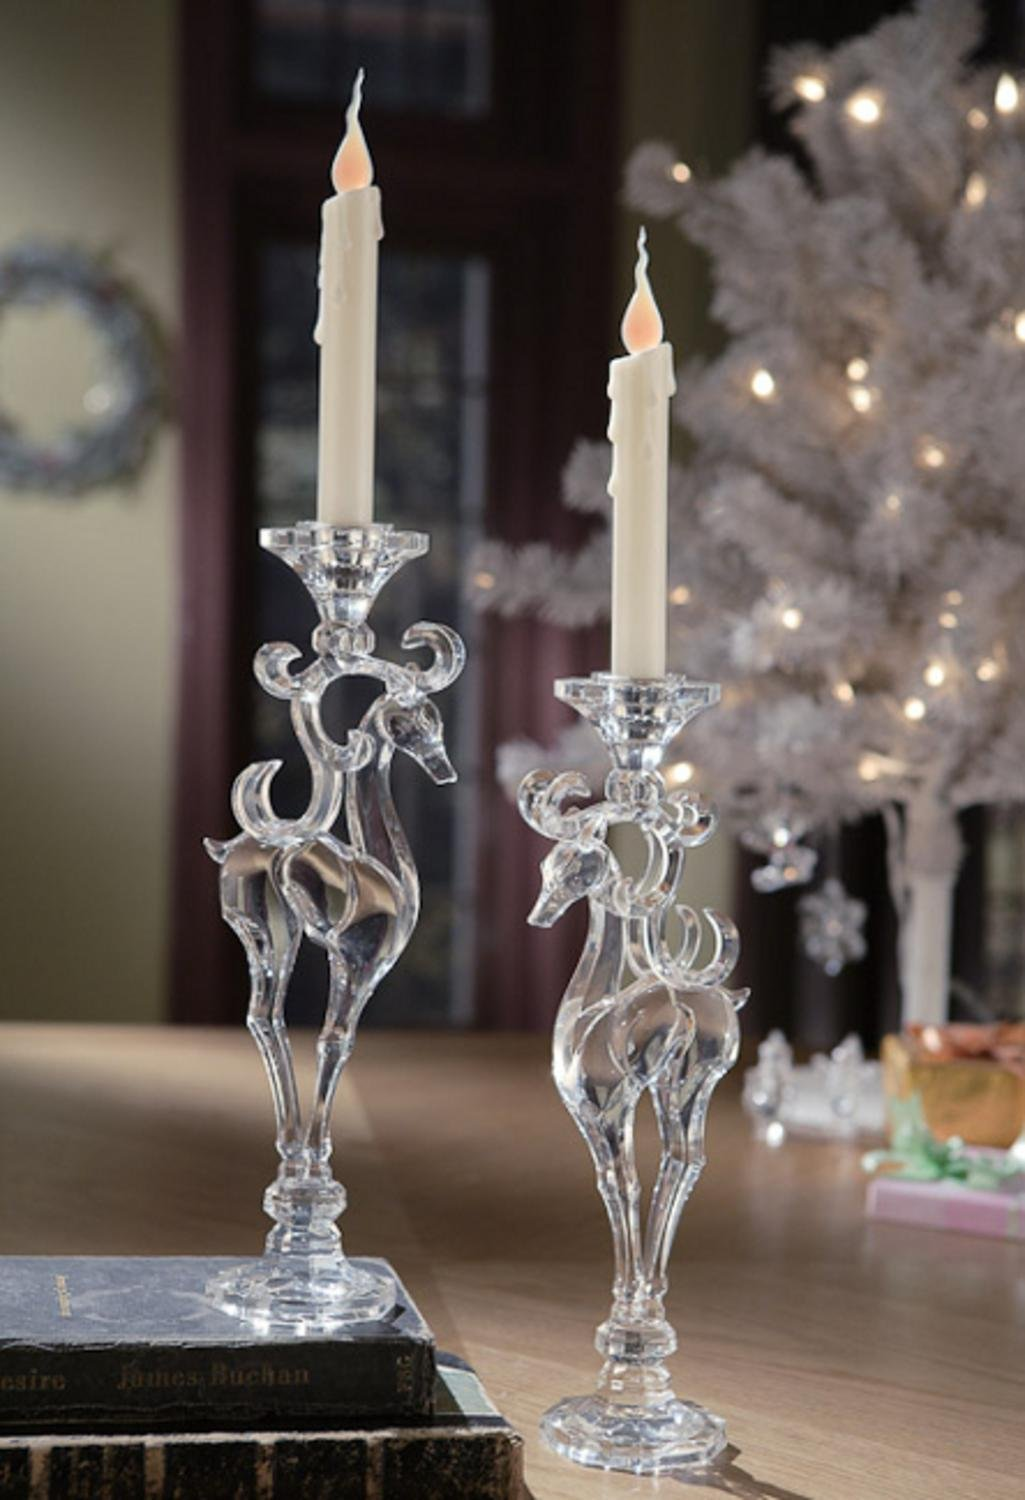 Pack of 4 Icy Crystal Decorative Christmas Deer Taper Candle Holders 12.8''